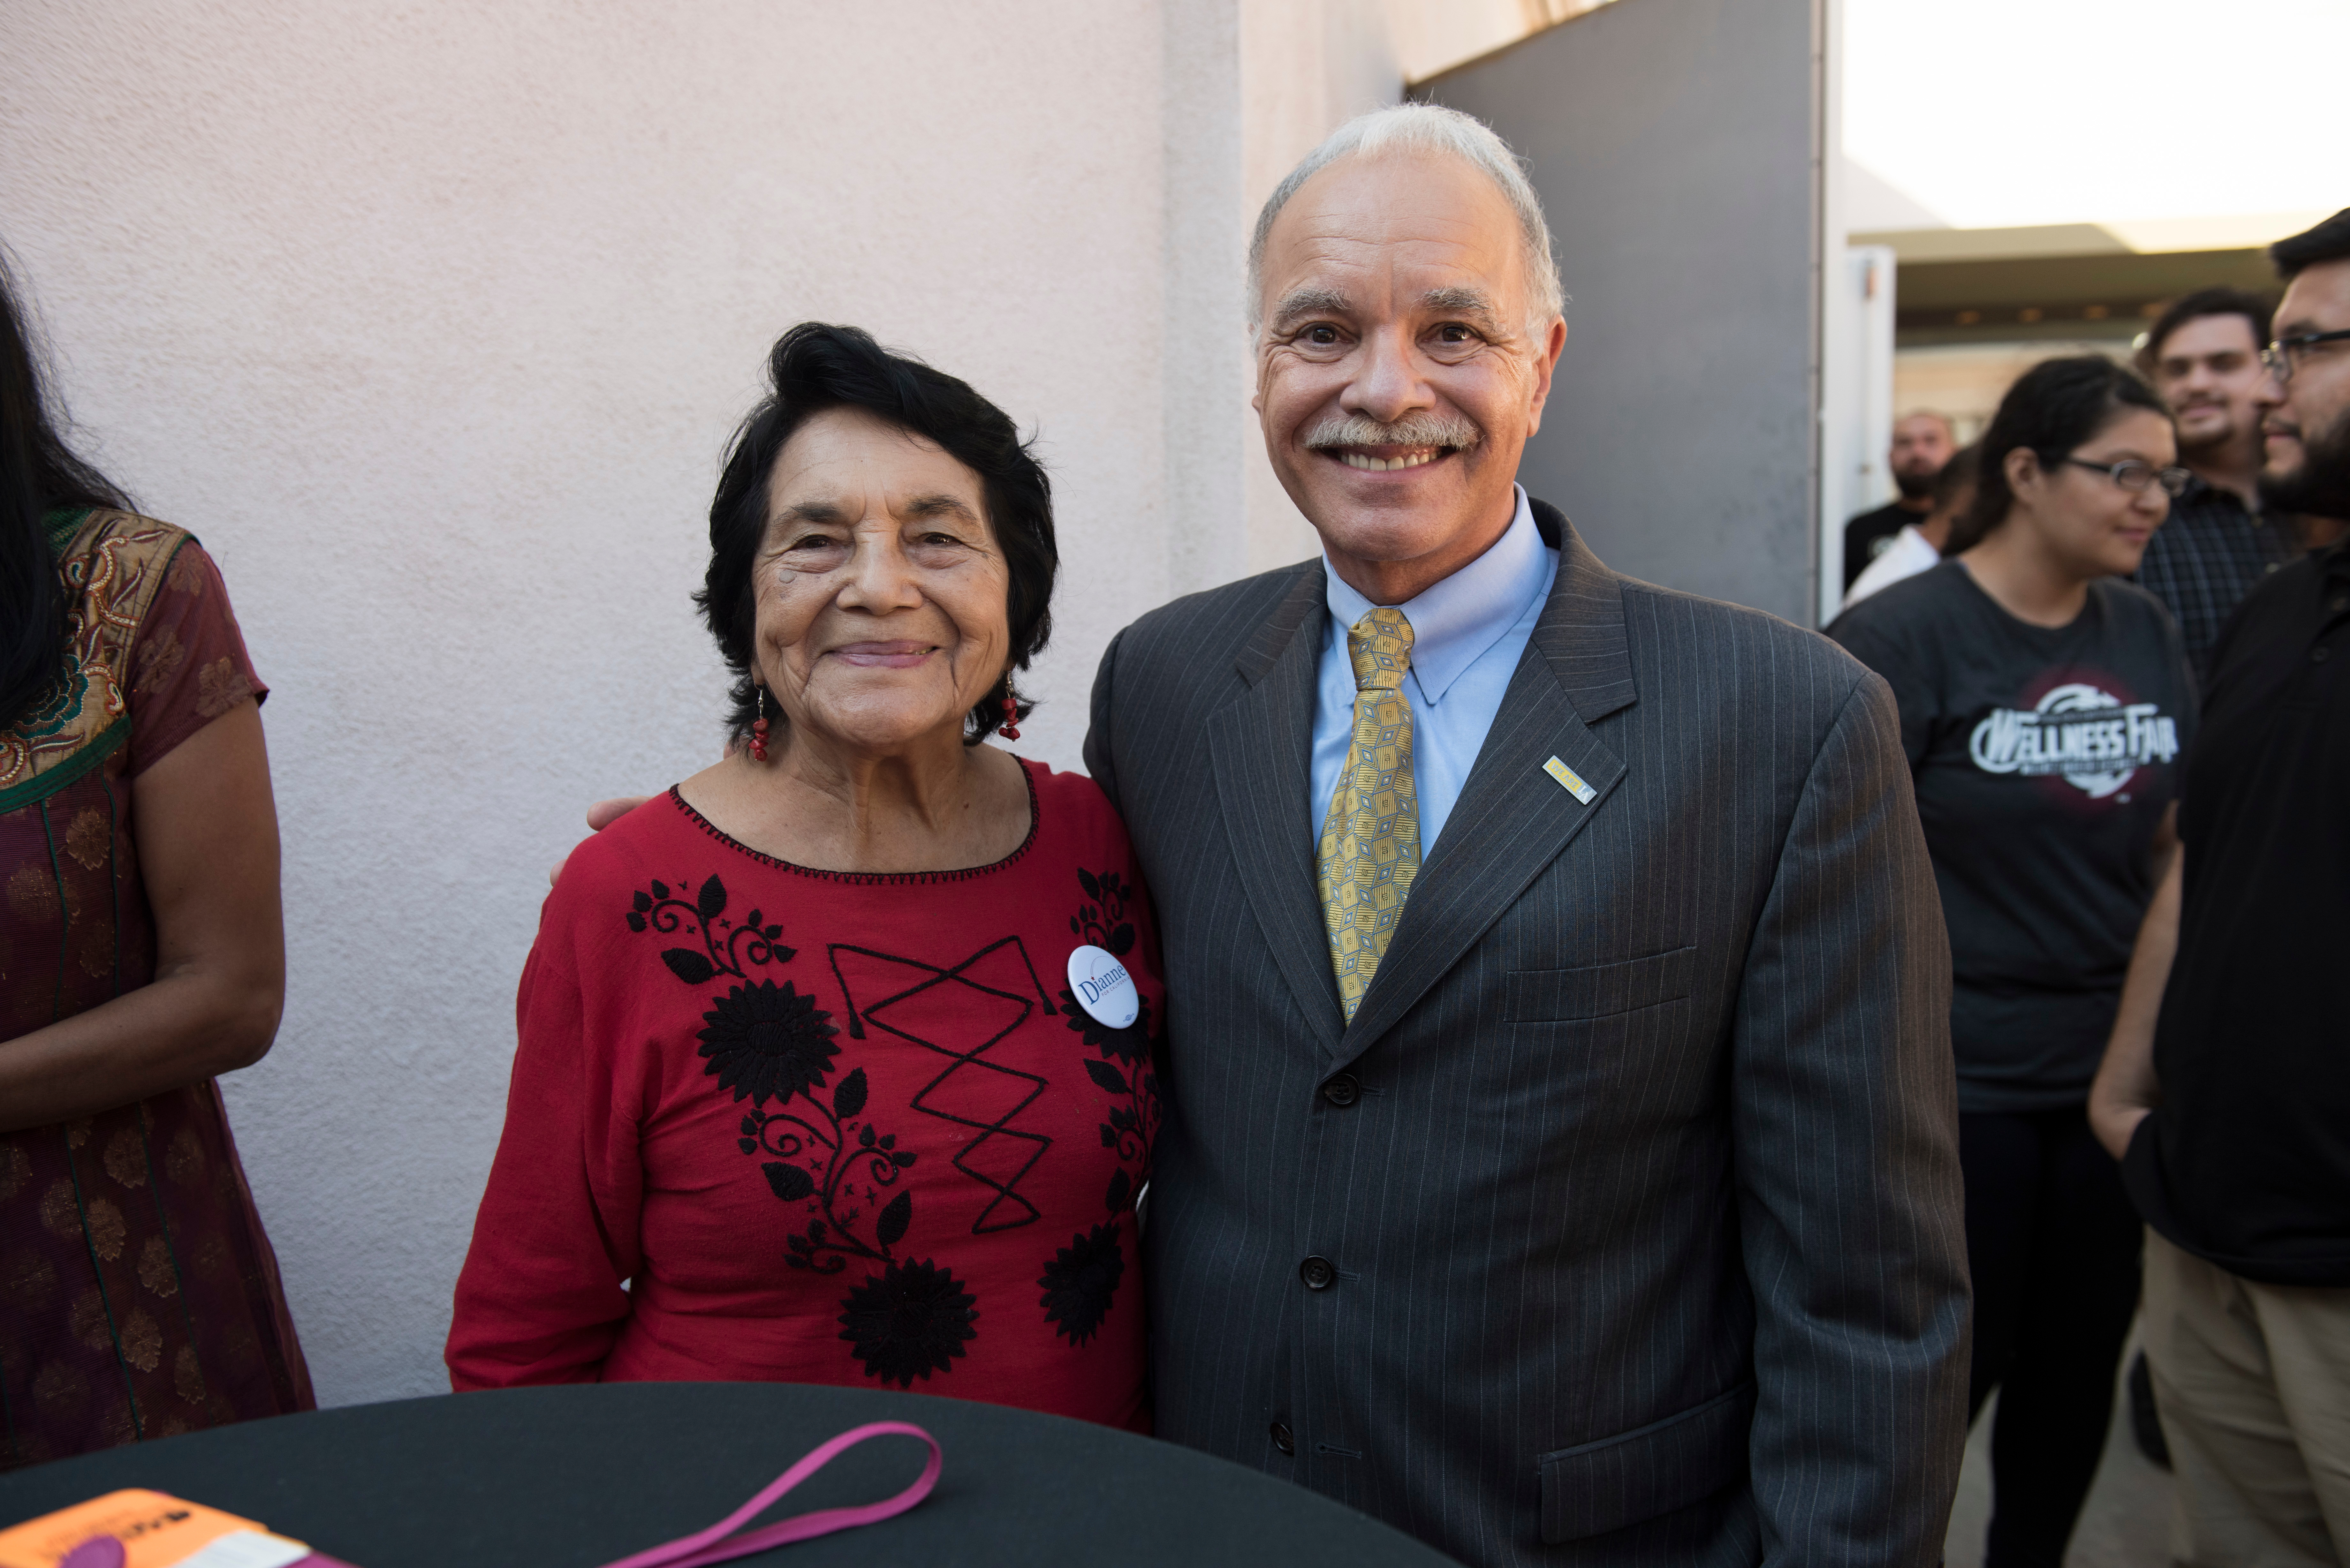 Dolores Huerta and President Covino at an afternoon reception.